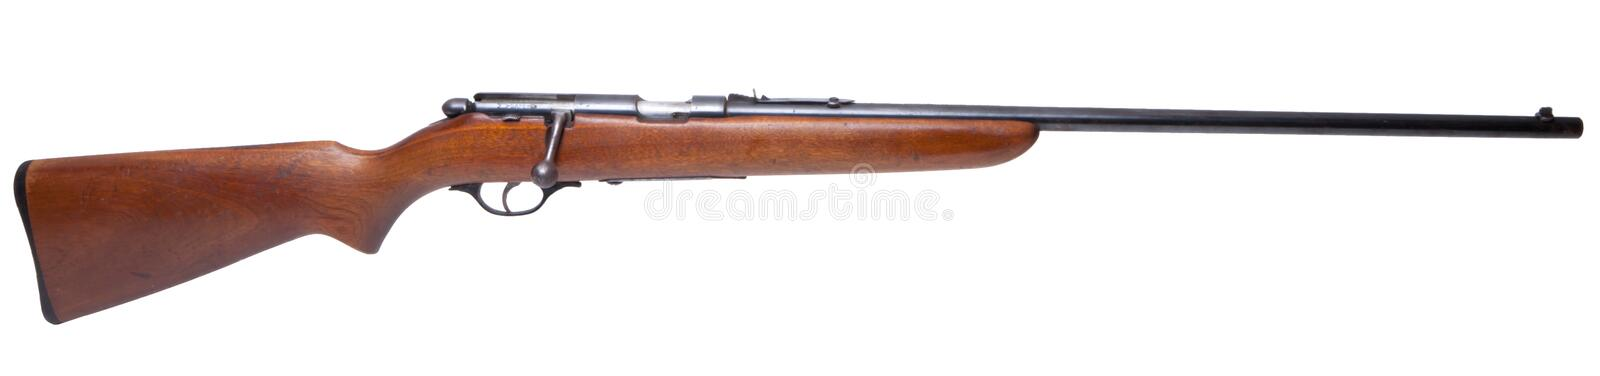 Isolated .22 Caliber Rifle Royalty Free Stock Images